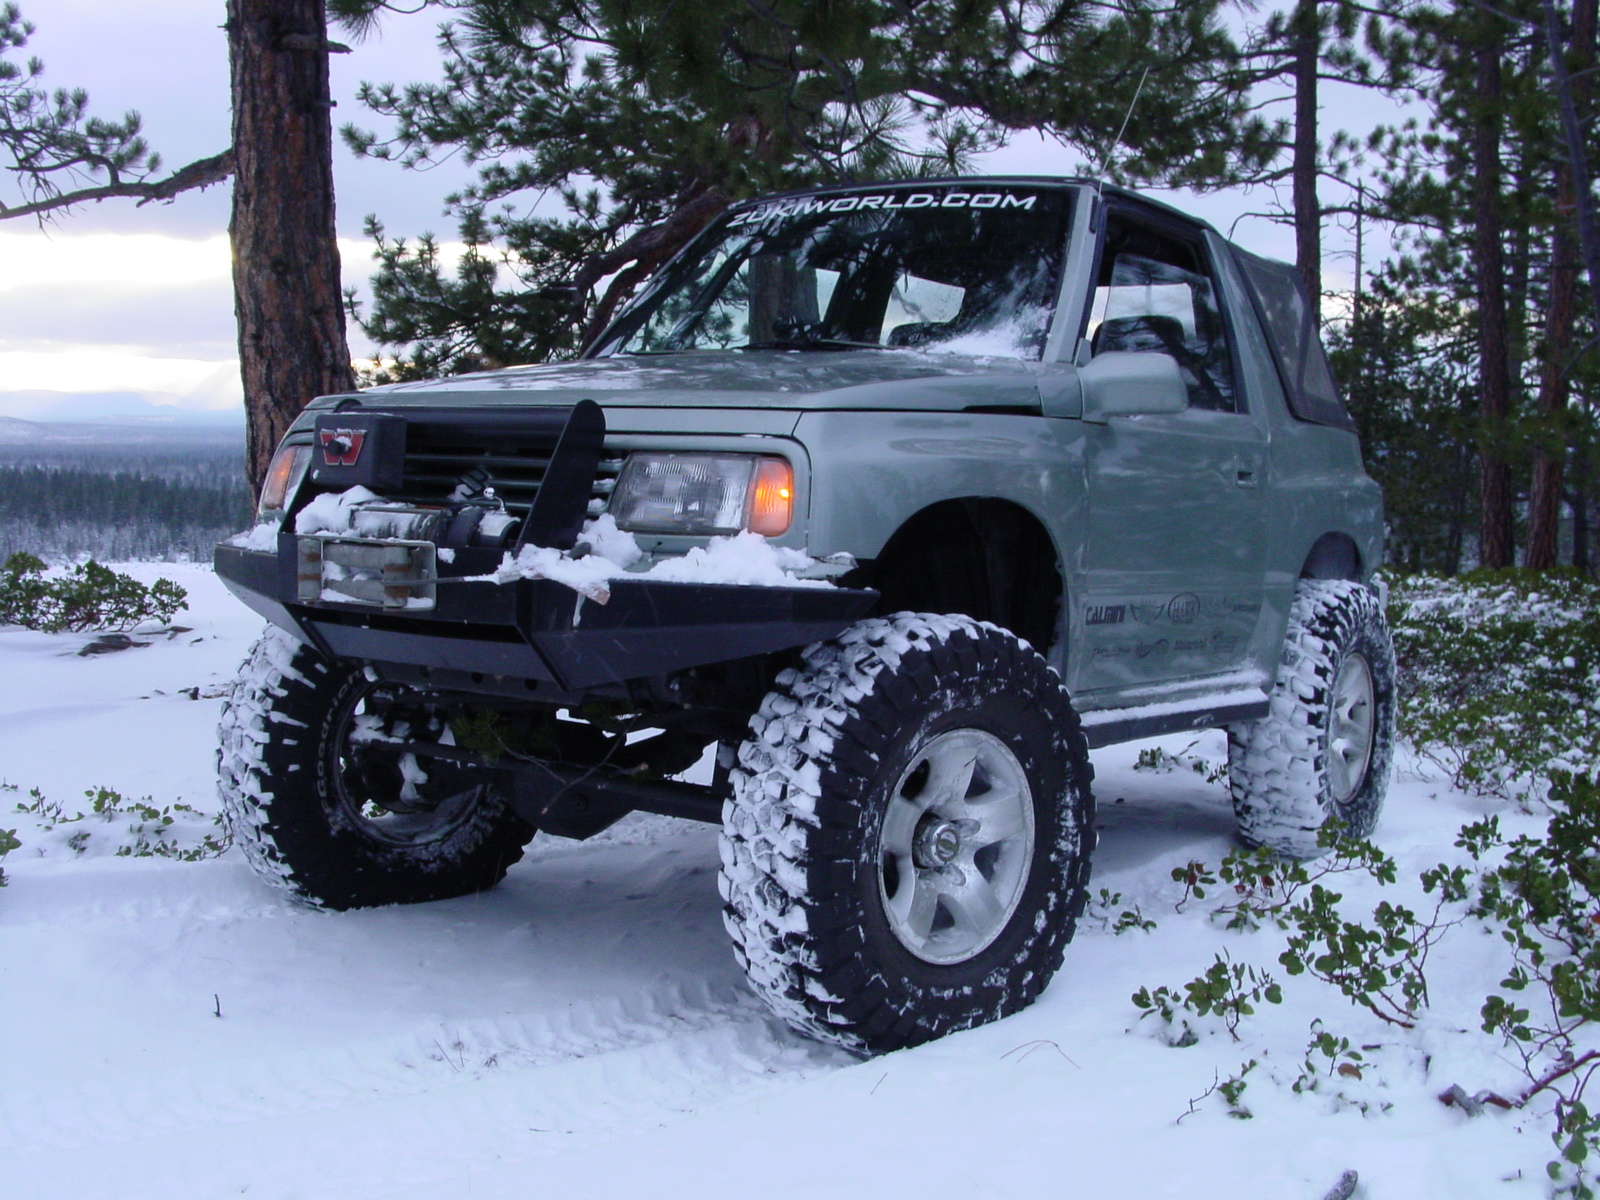 1989 Suzuki Sidekick in the snow